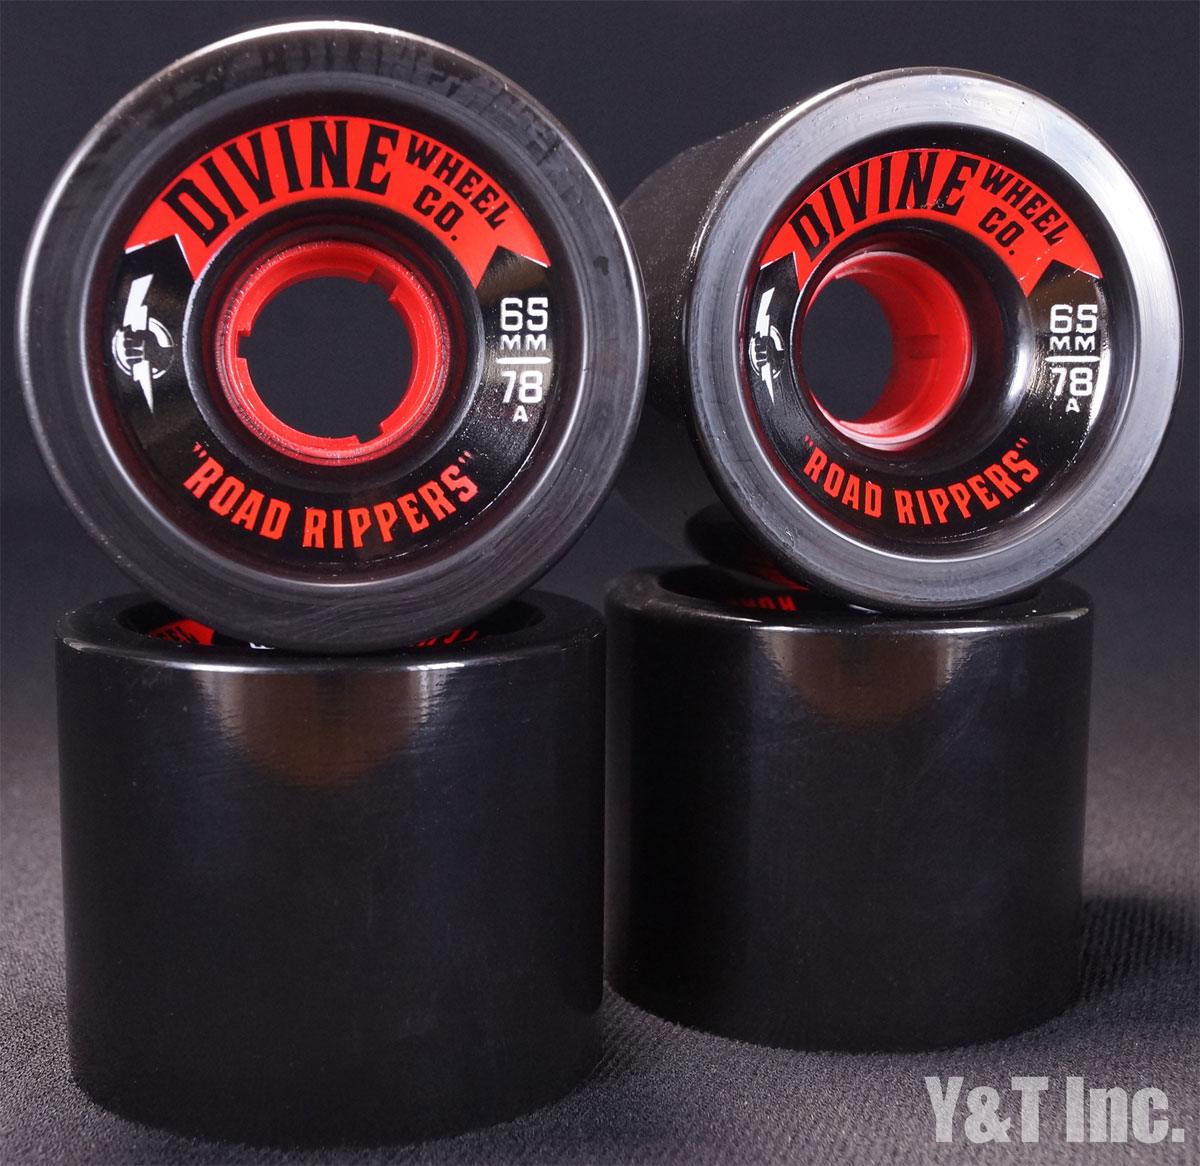 DIVINE ROAD RIPPER 65mm 78a BLACK 1